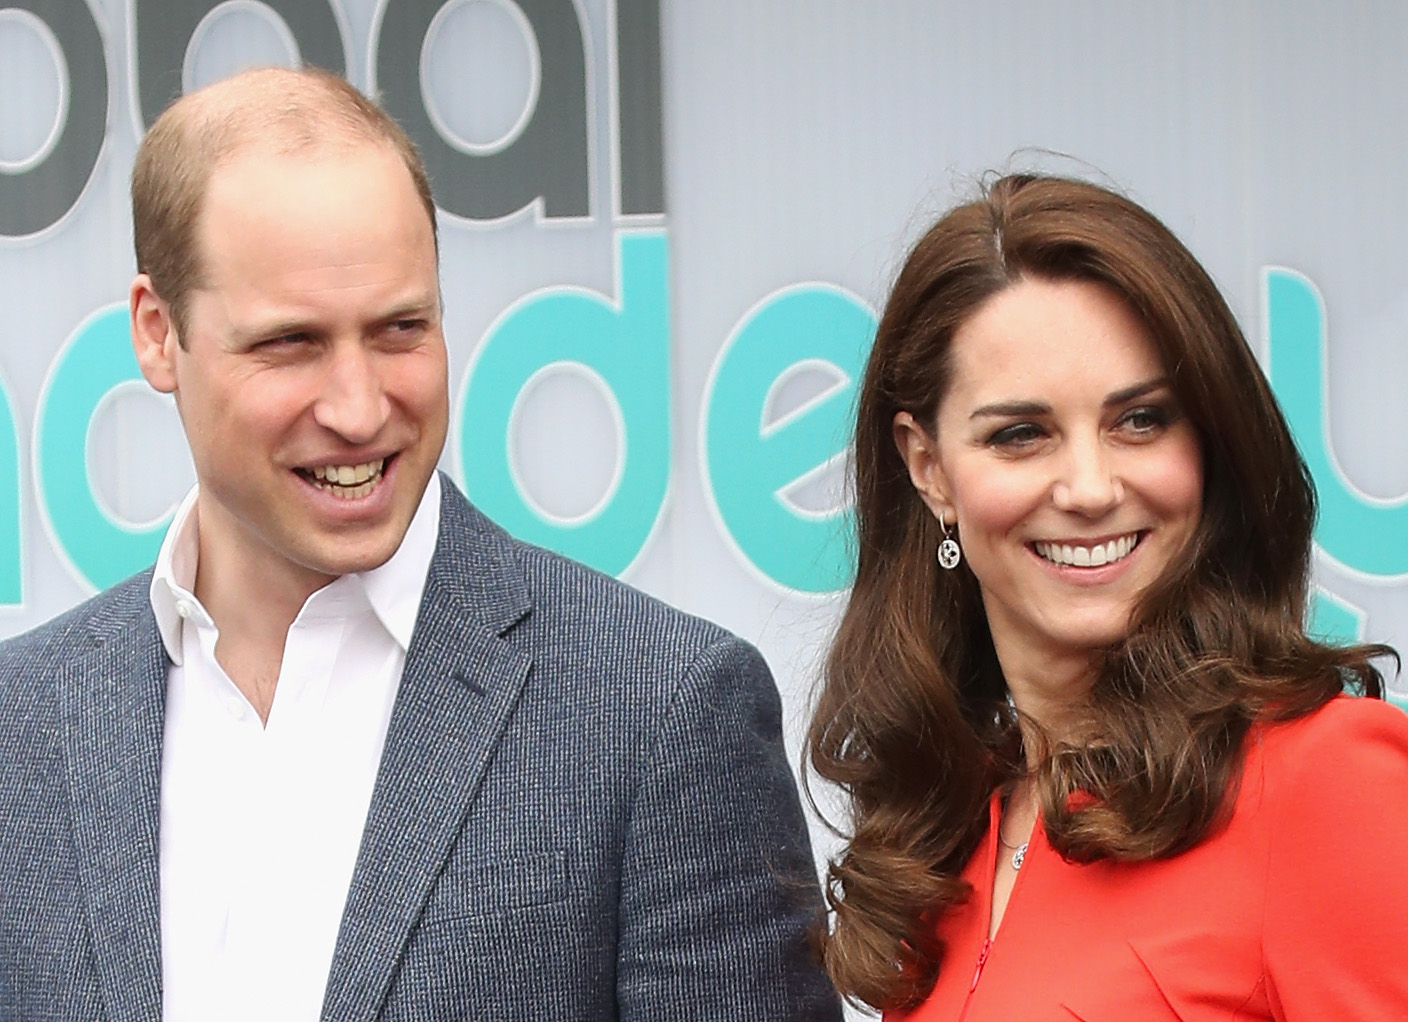 Prince William And Kate Middleton Surprise Radio 1 Host